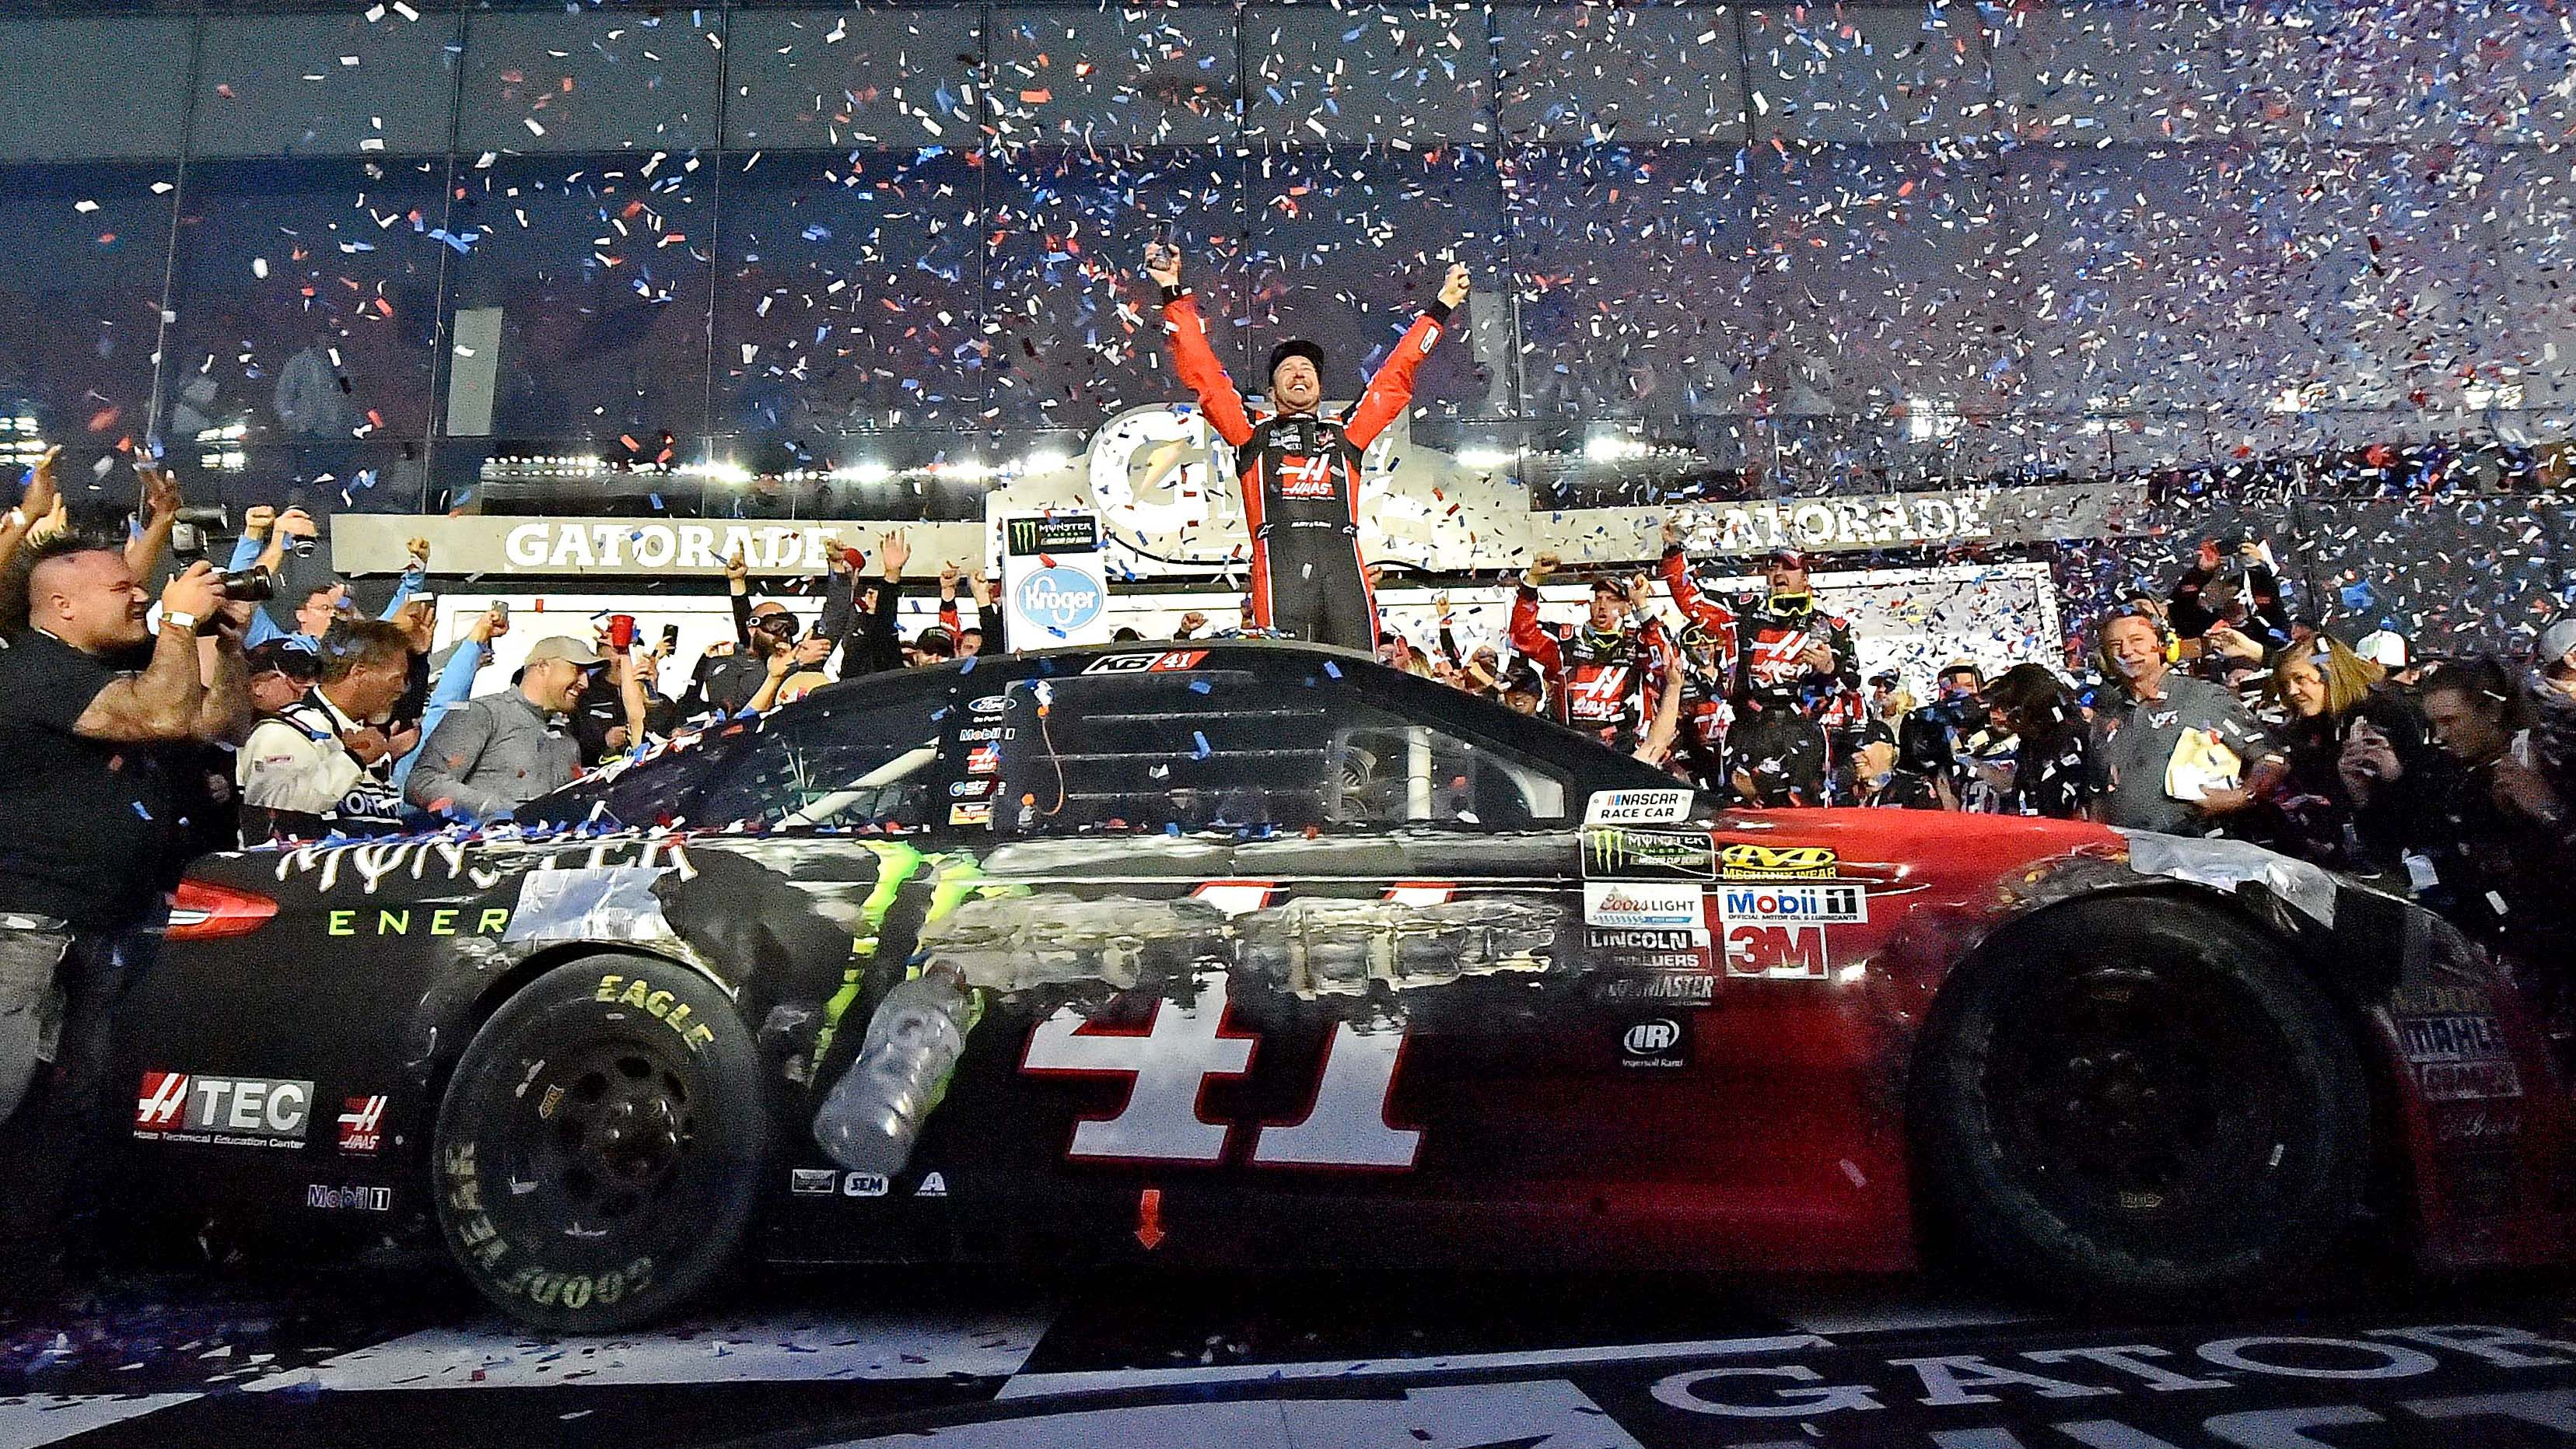 Feb 26, 2017; Daytona Beach, FL, USA; NASCAR Cup Series driver Kurt Busch (41) celebrates winning the 2017 Daytona 500 at Daytona International Speedway. Mandatory Credit: Jasen Vinlove-USA TODAY Sports